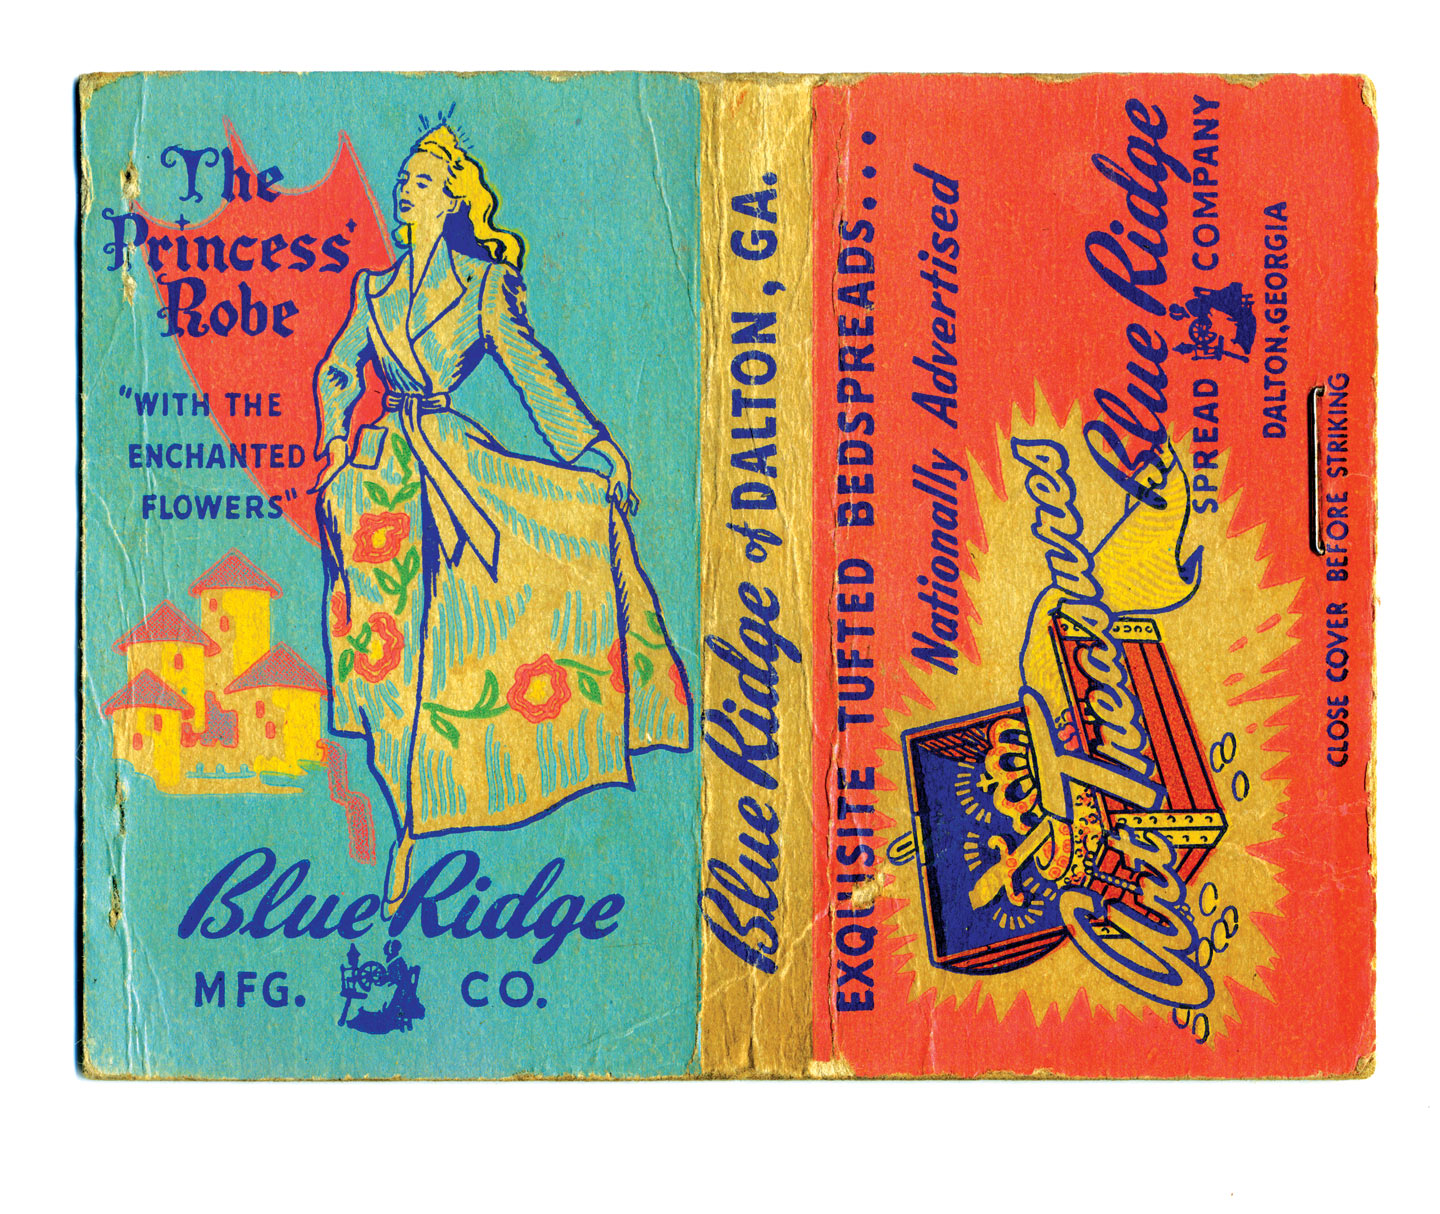 MATCHBOOK COVER advertisement for Blue Ridge Manufacturing Company, circa 1945.  Private Collection.